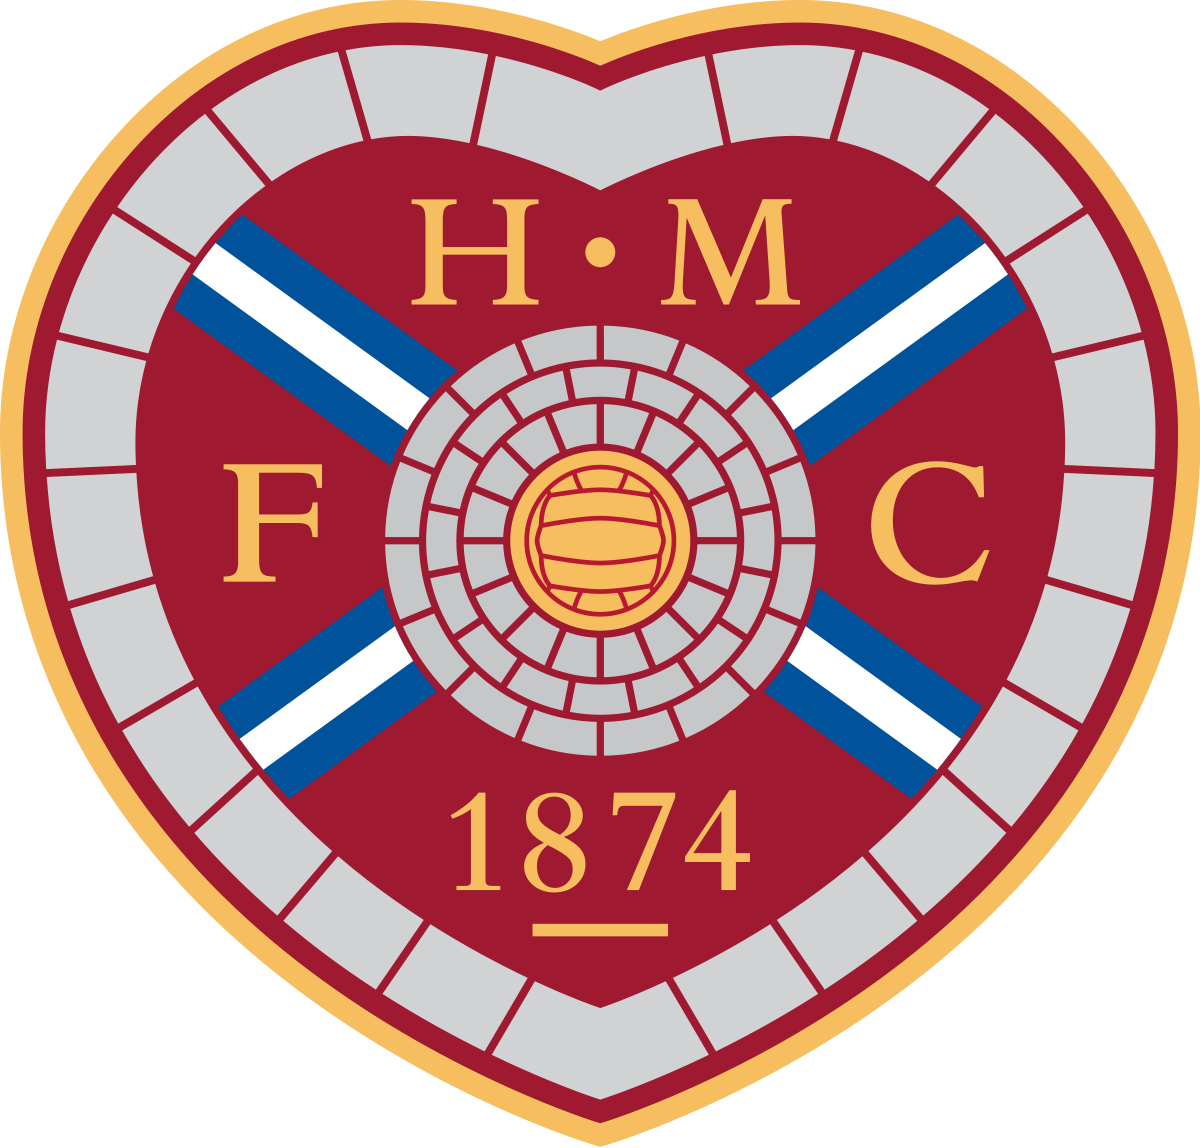 Football heart png. Image of midlothian fc